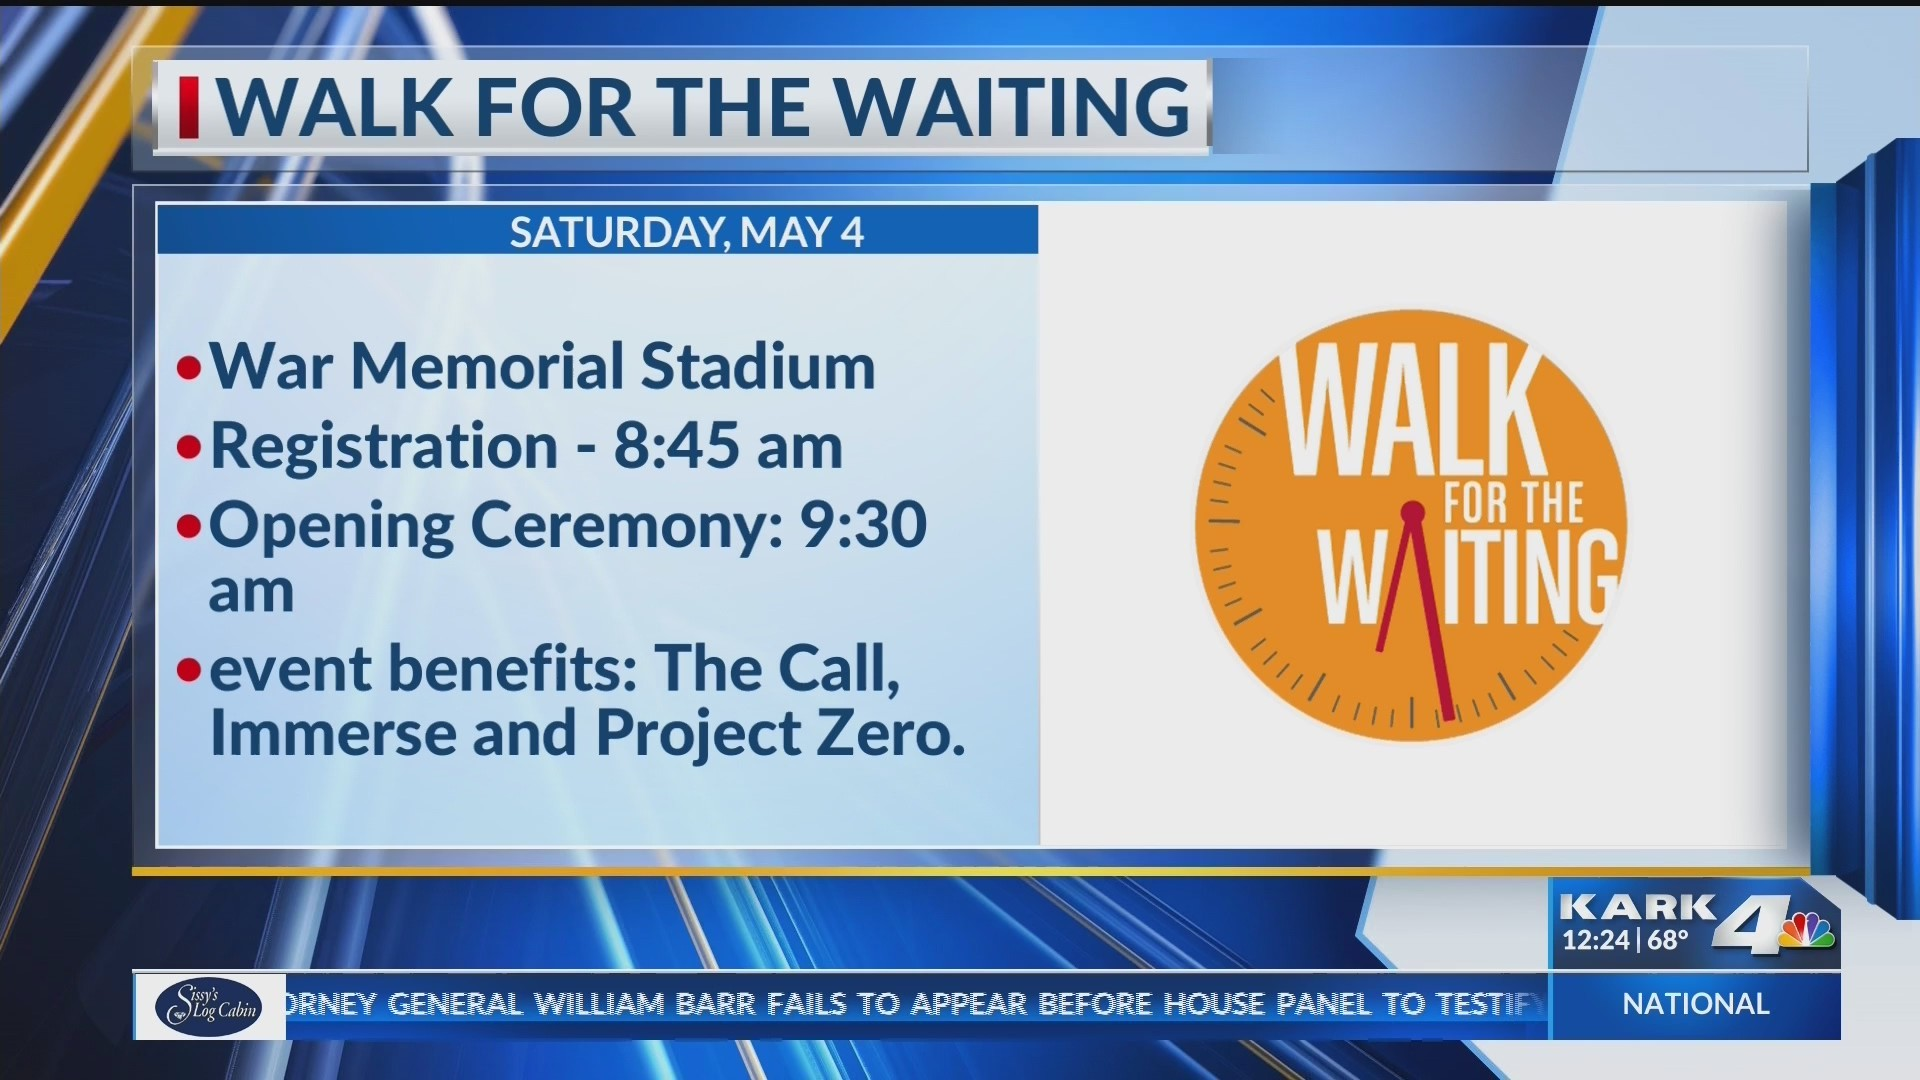 Walk_for_the_Waiting_0_20190502213928-118809306